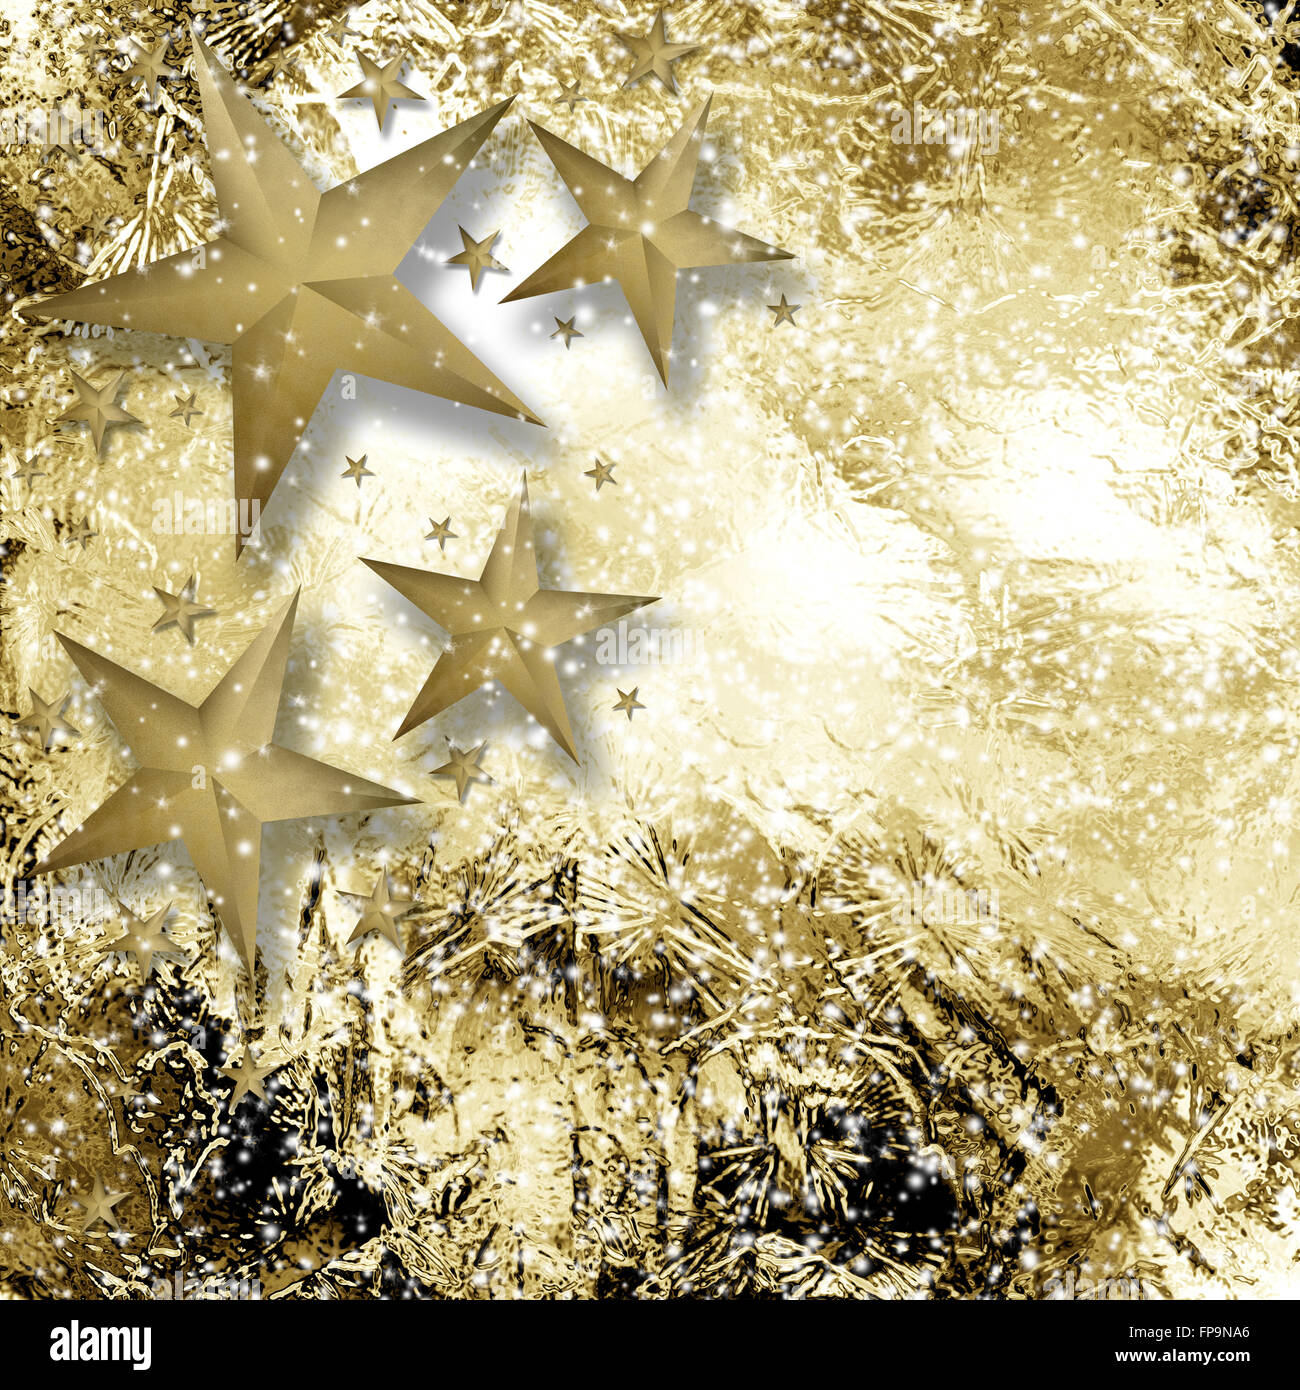 Gold and white sparkle star background with rough texture - Stock Image